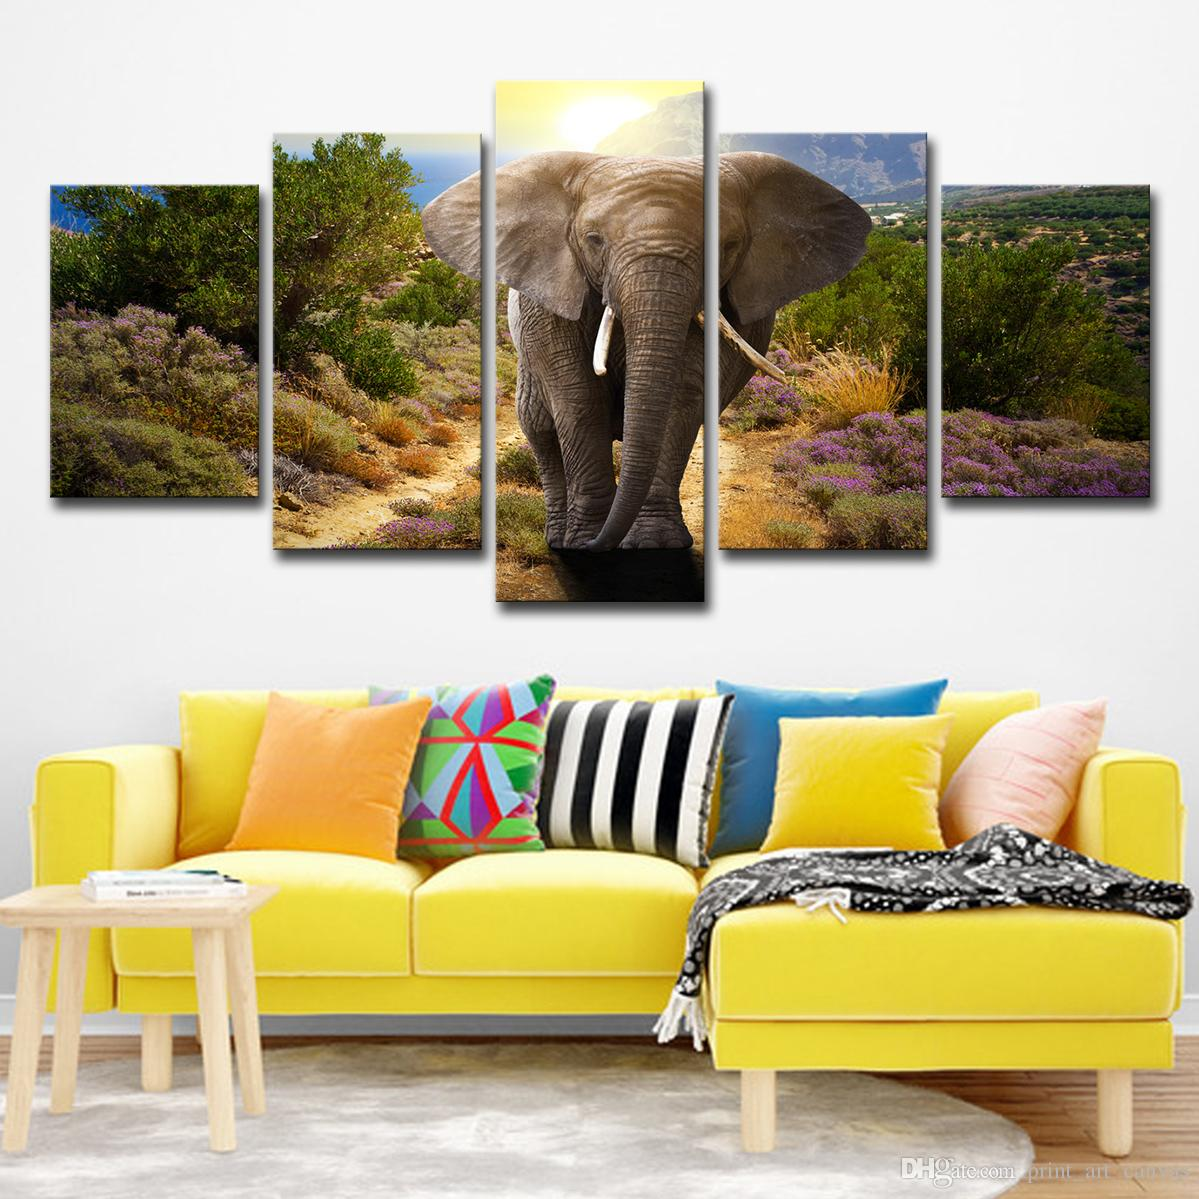 Modern Home Wall Decor Canvas Modular Picture Art HD Print Painting On Canvas Artworks 5 Panel Animal Elephant